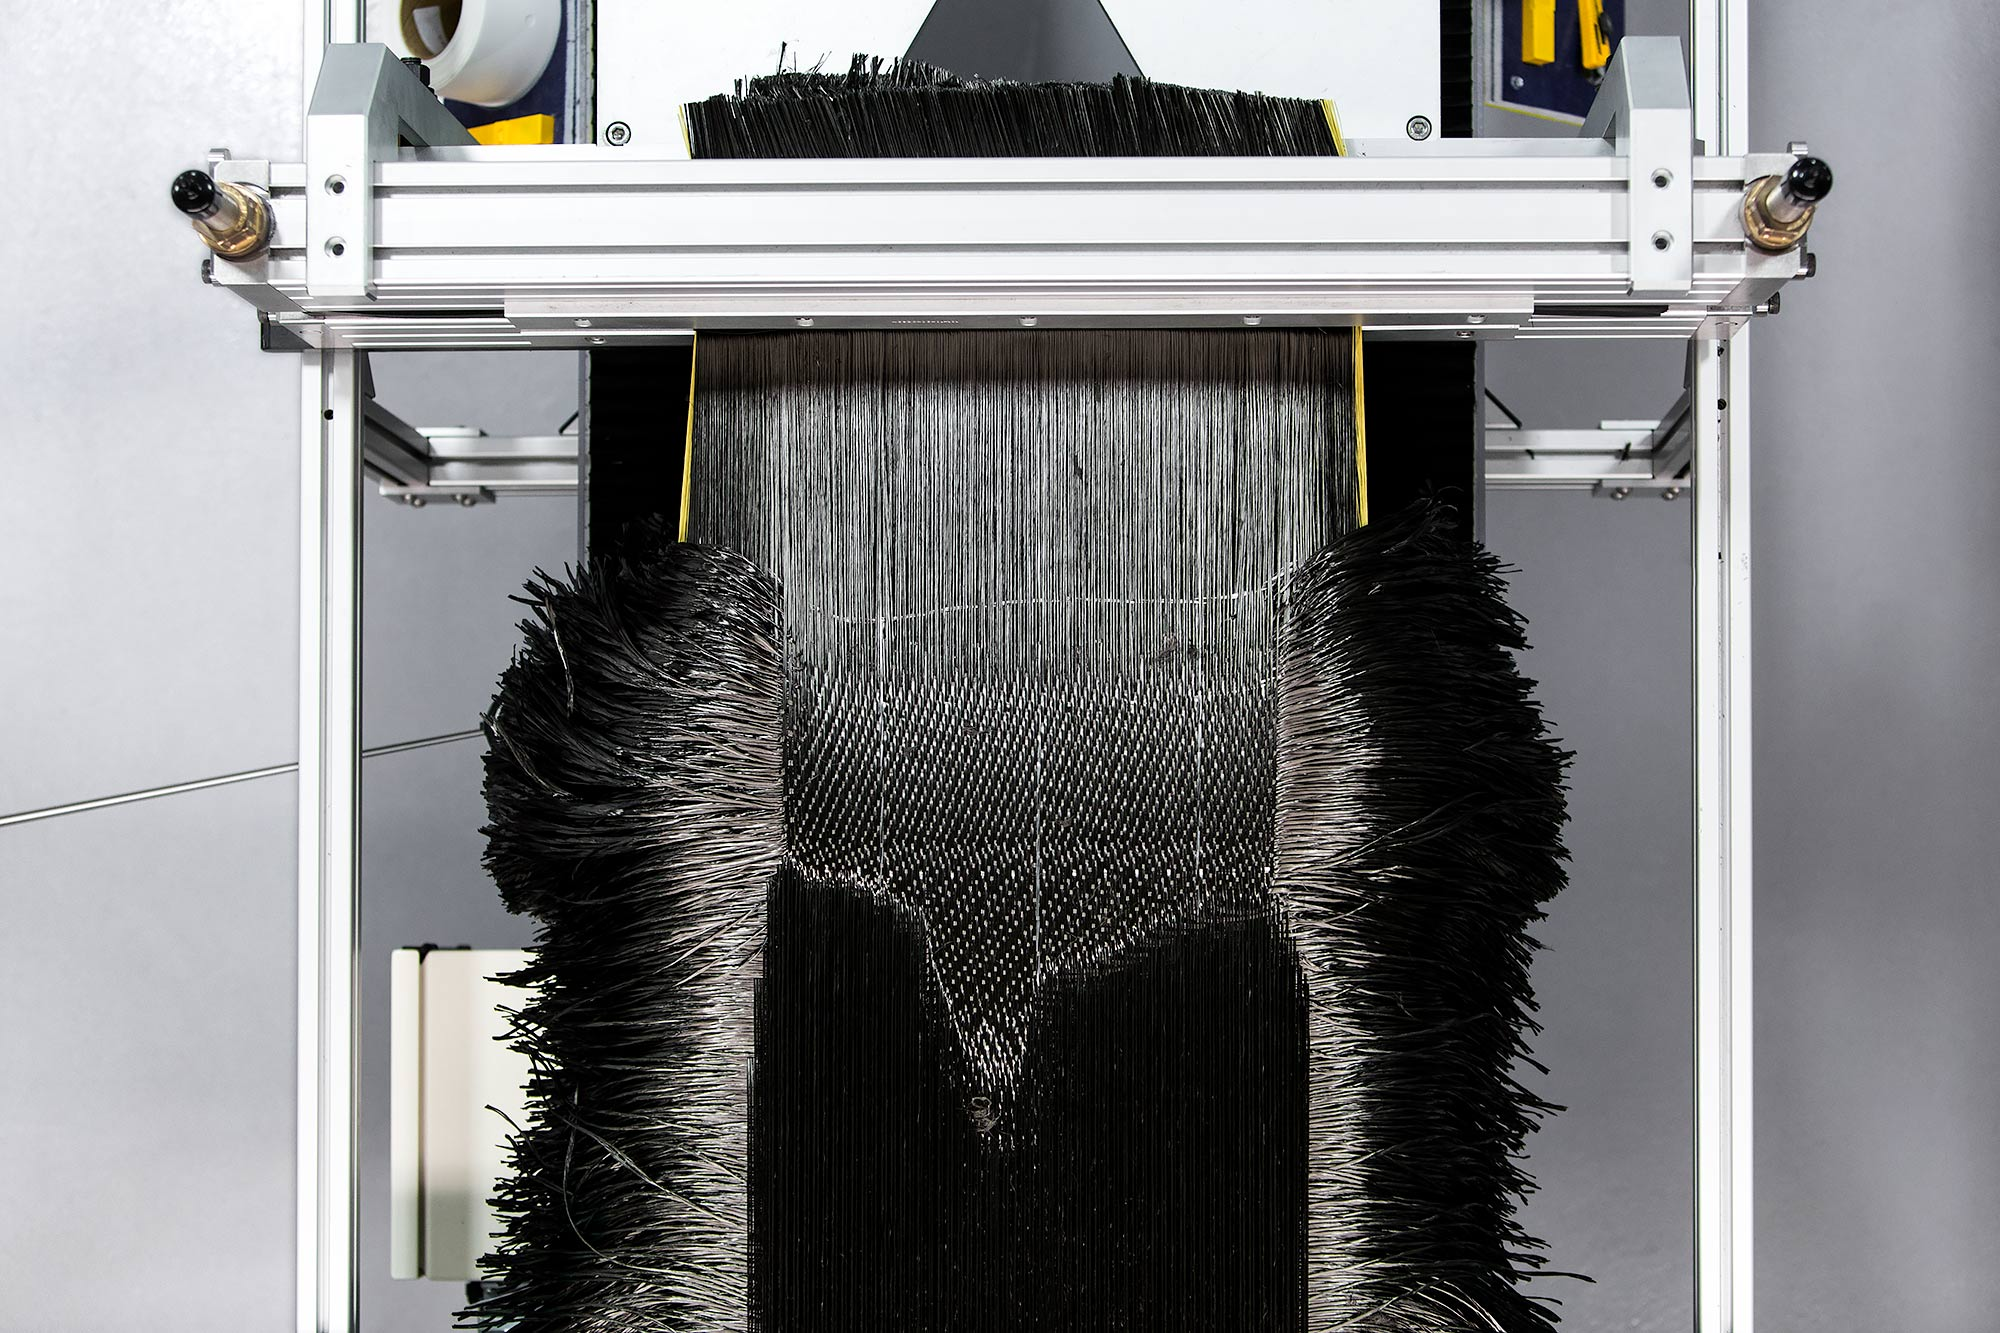 Carbon fiber loom weaving jet engine blade material | Scott Gable industrial photographer